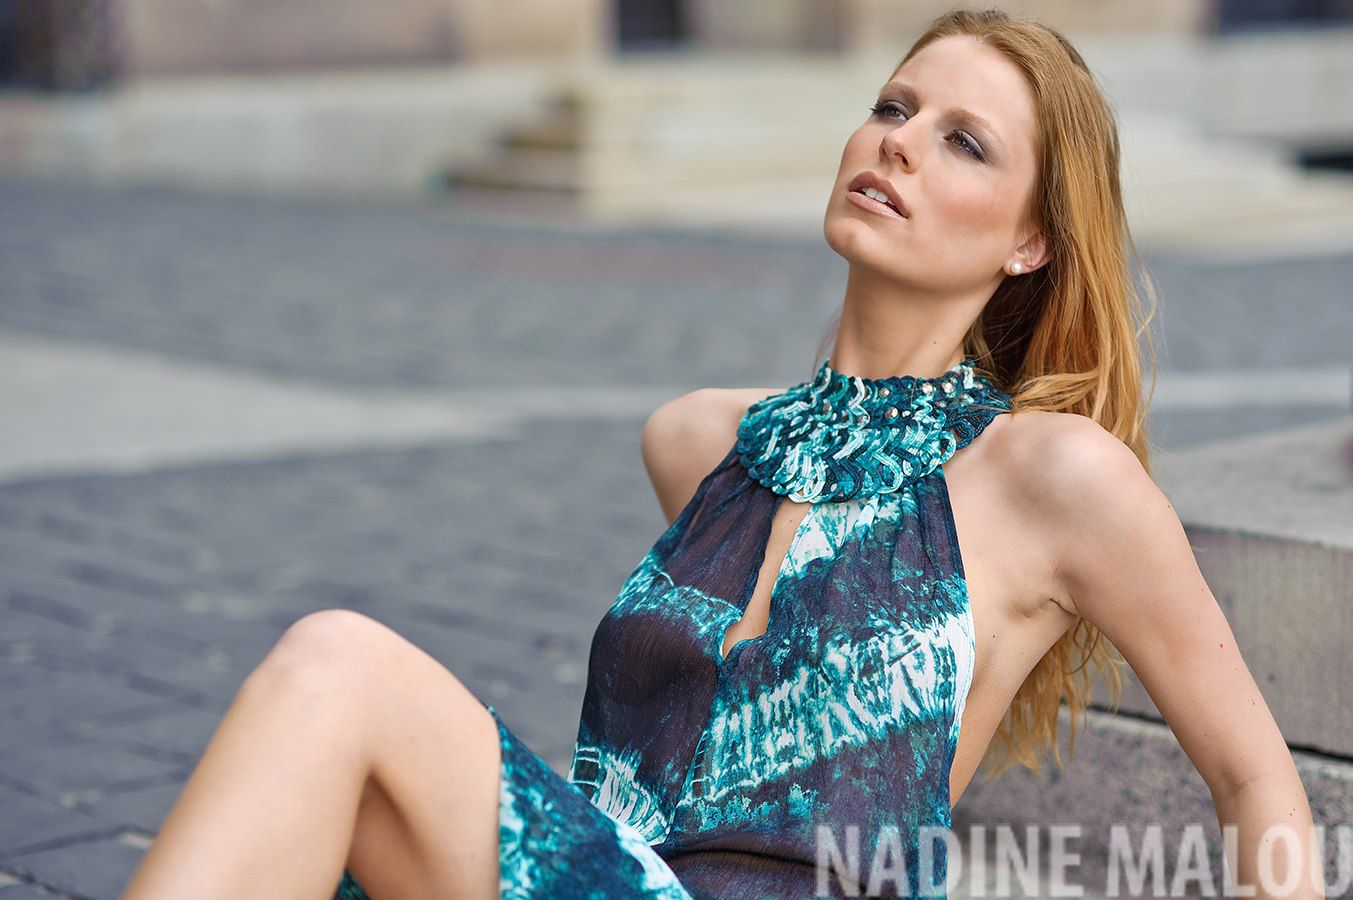 fashion model nadine outdoor shooting photography on the street